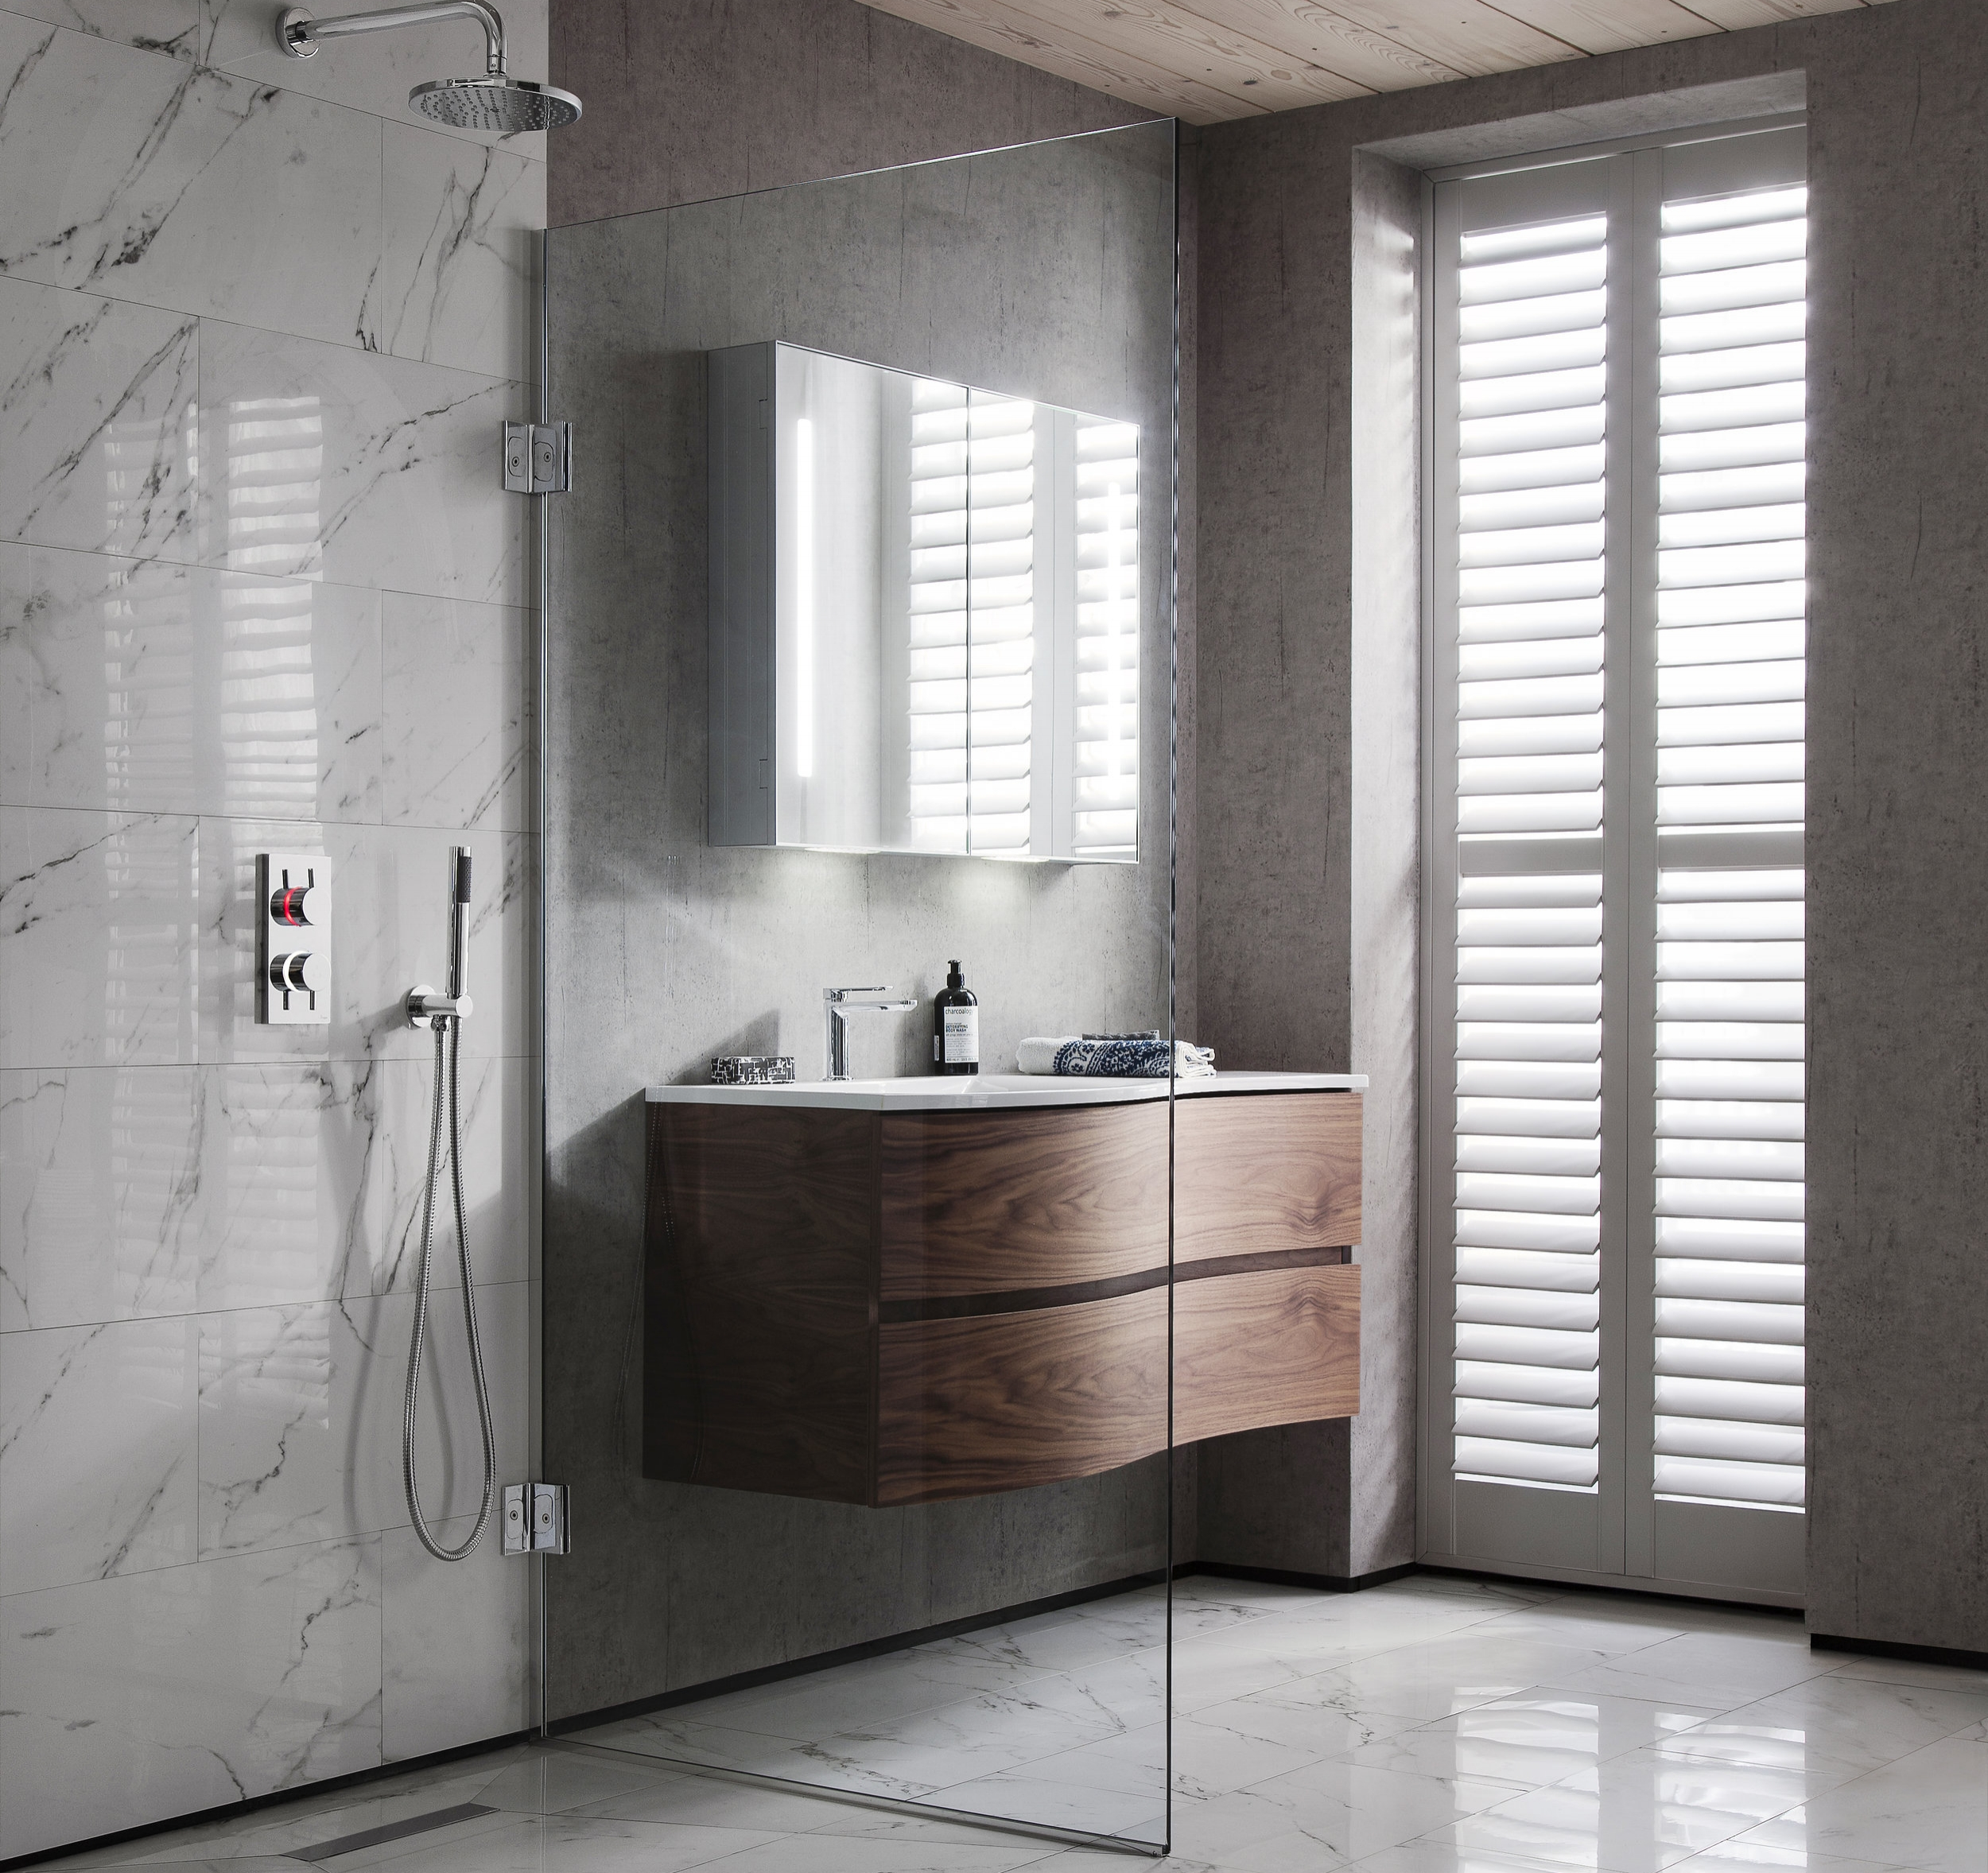 CROSSWATER - For over 20 years Crosswater has been celebrated as the leading supplier of premium products for the bathroom. Throughout those two decades we have honed our expertise, perfected our designs and broadened our product offering - not to mention winning a few awards along the way, bringing you superior quality and unrivaled performance across every aspect of bathroom design and stunning brassware.Visit the Crosswater Website